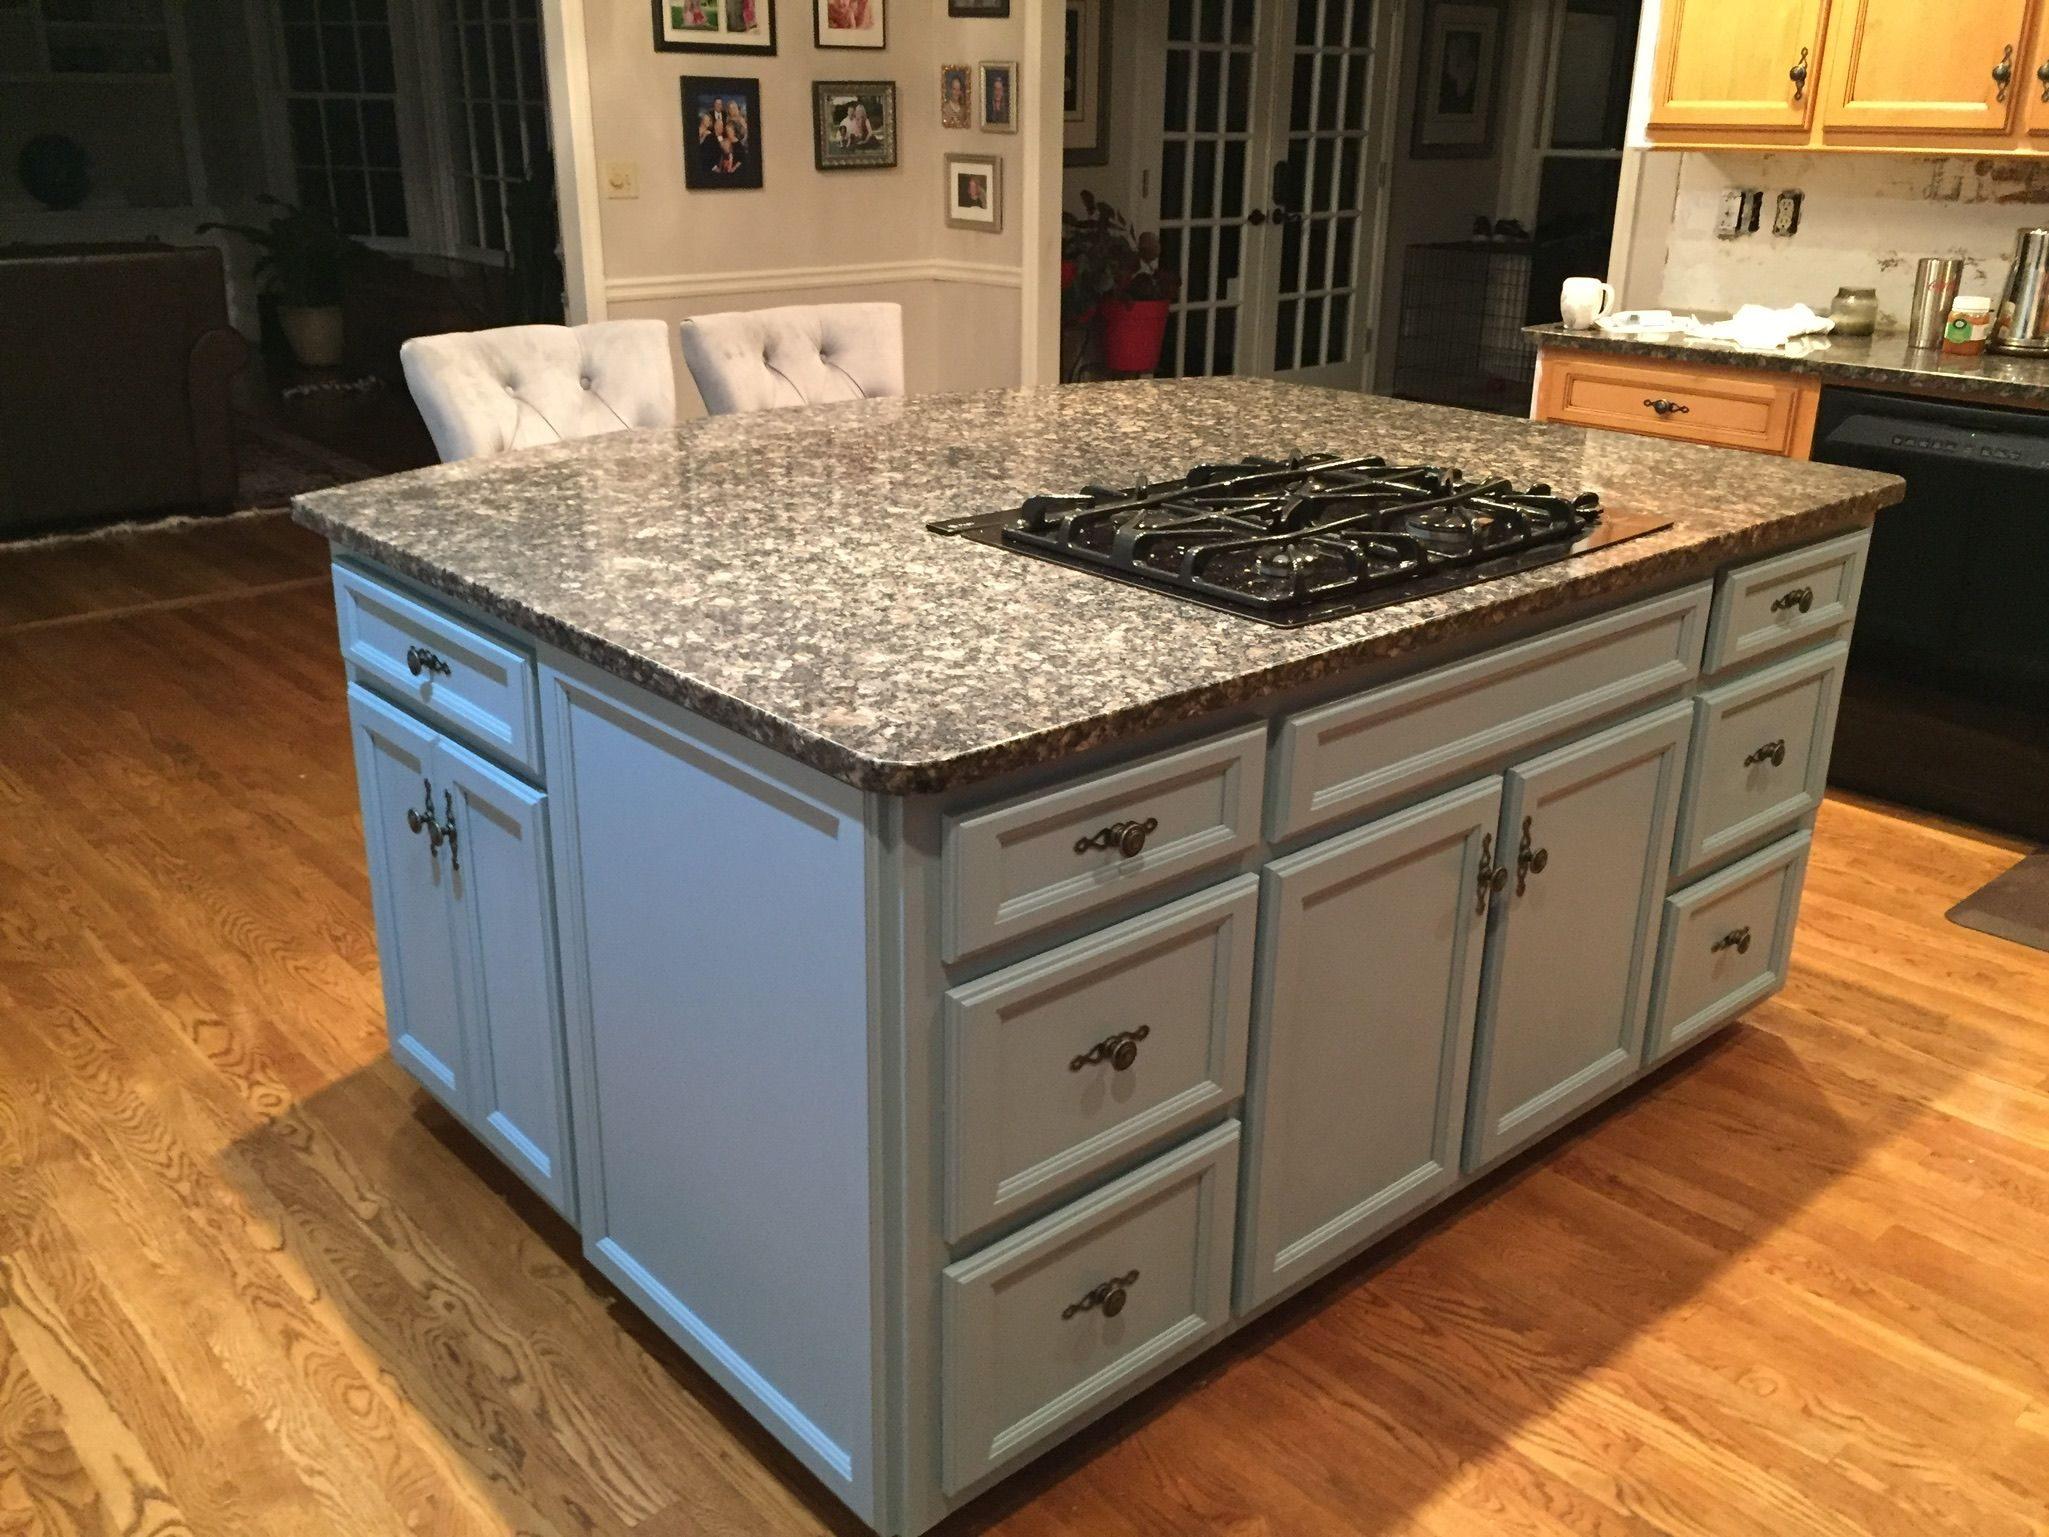 Halcyon Blue General Finishes Milk Paint Sprayed On Finish Kitchen Cabinets Milk Paint Cabinets Blue Cabinets